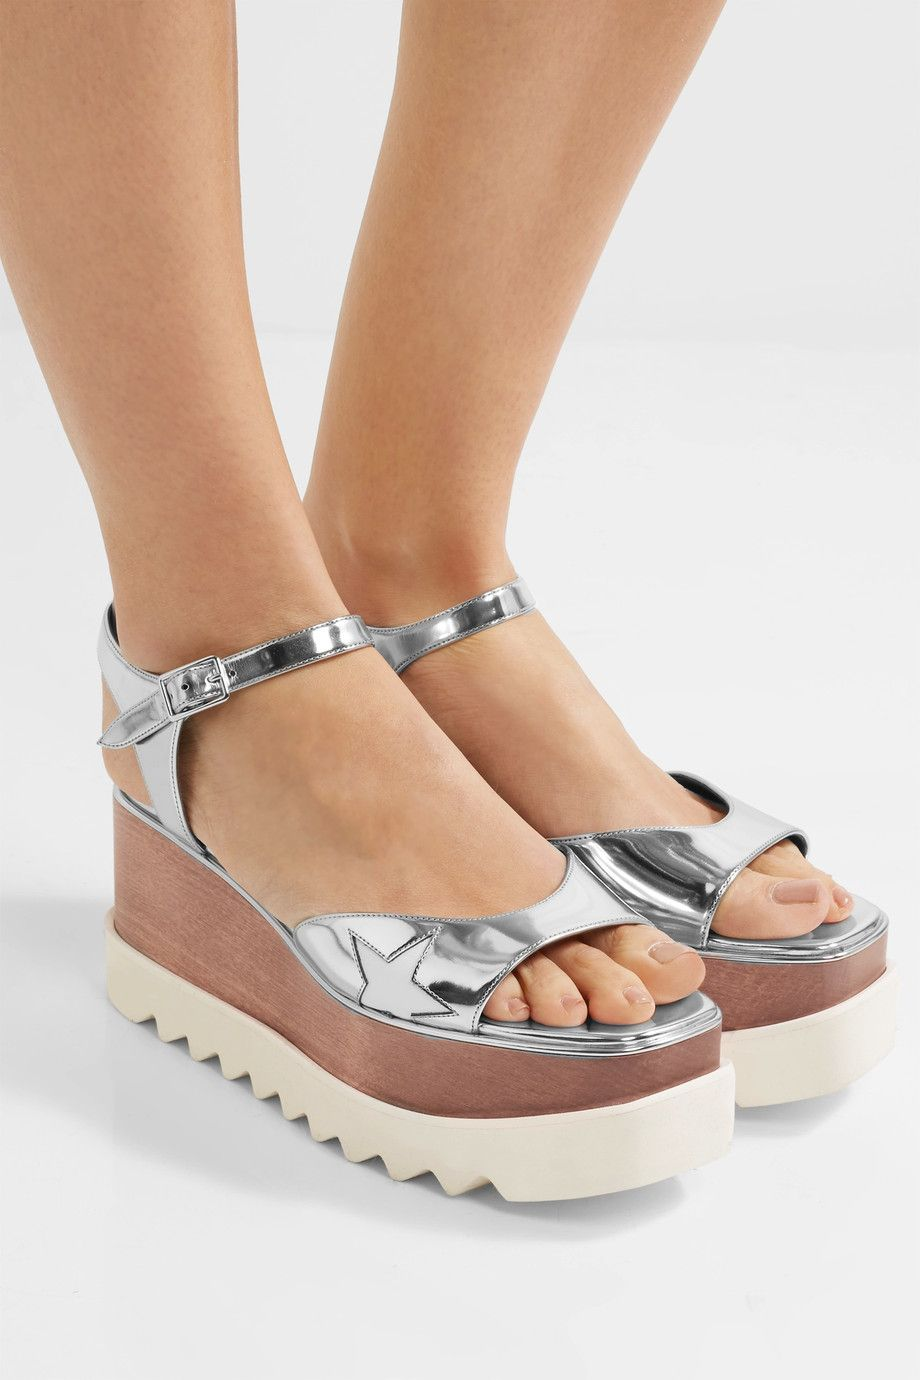 for sale finishline Stella McCartney Metallic Logo Sandals free shipping real qa0XTod